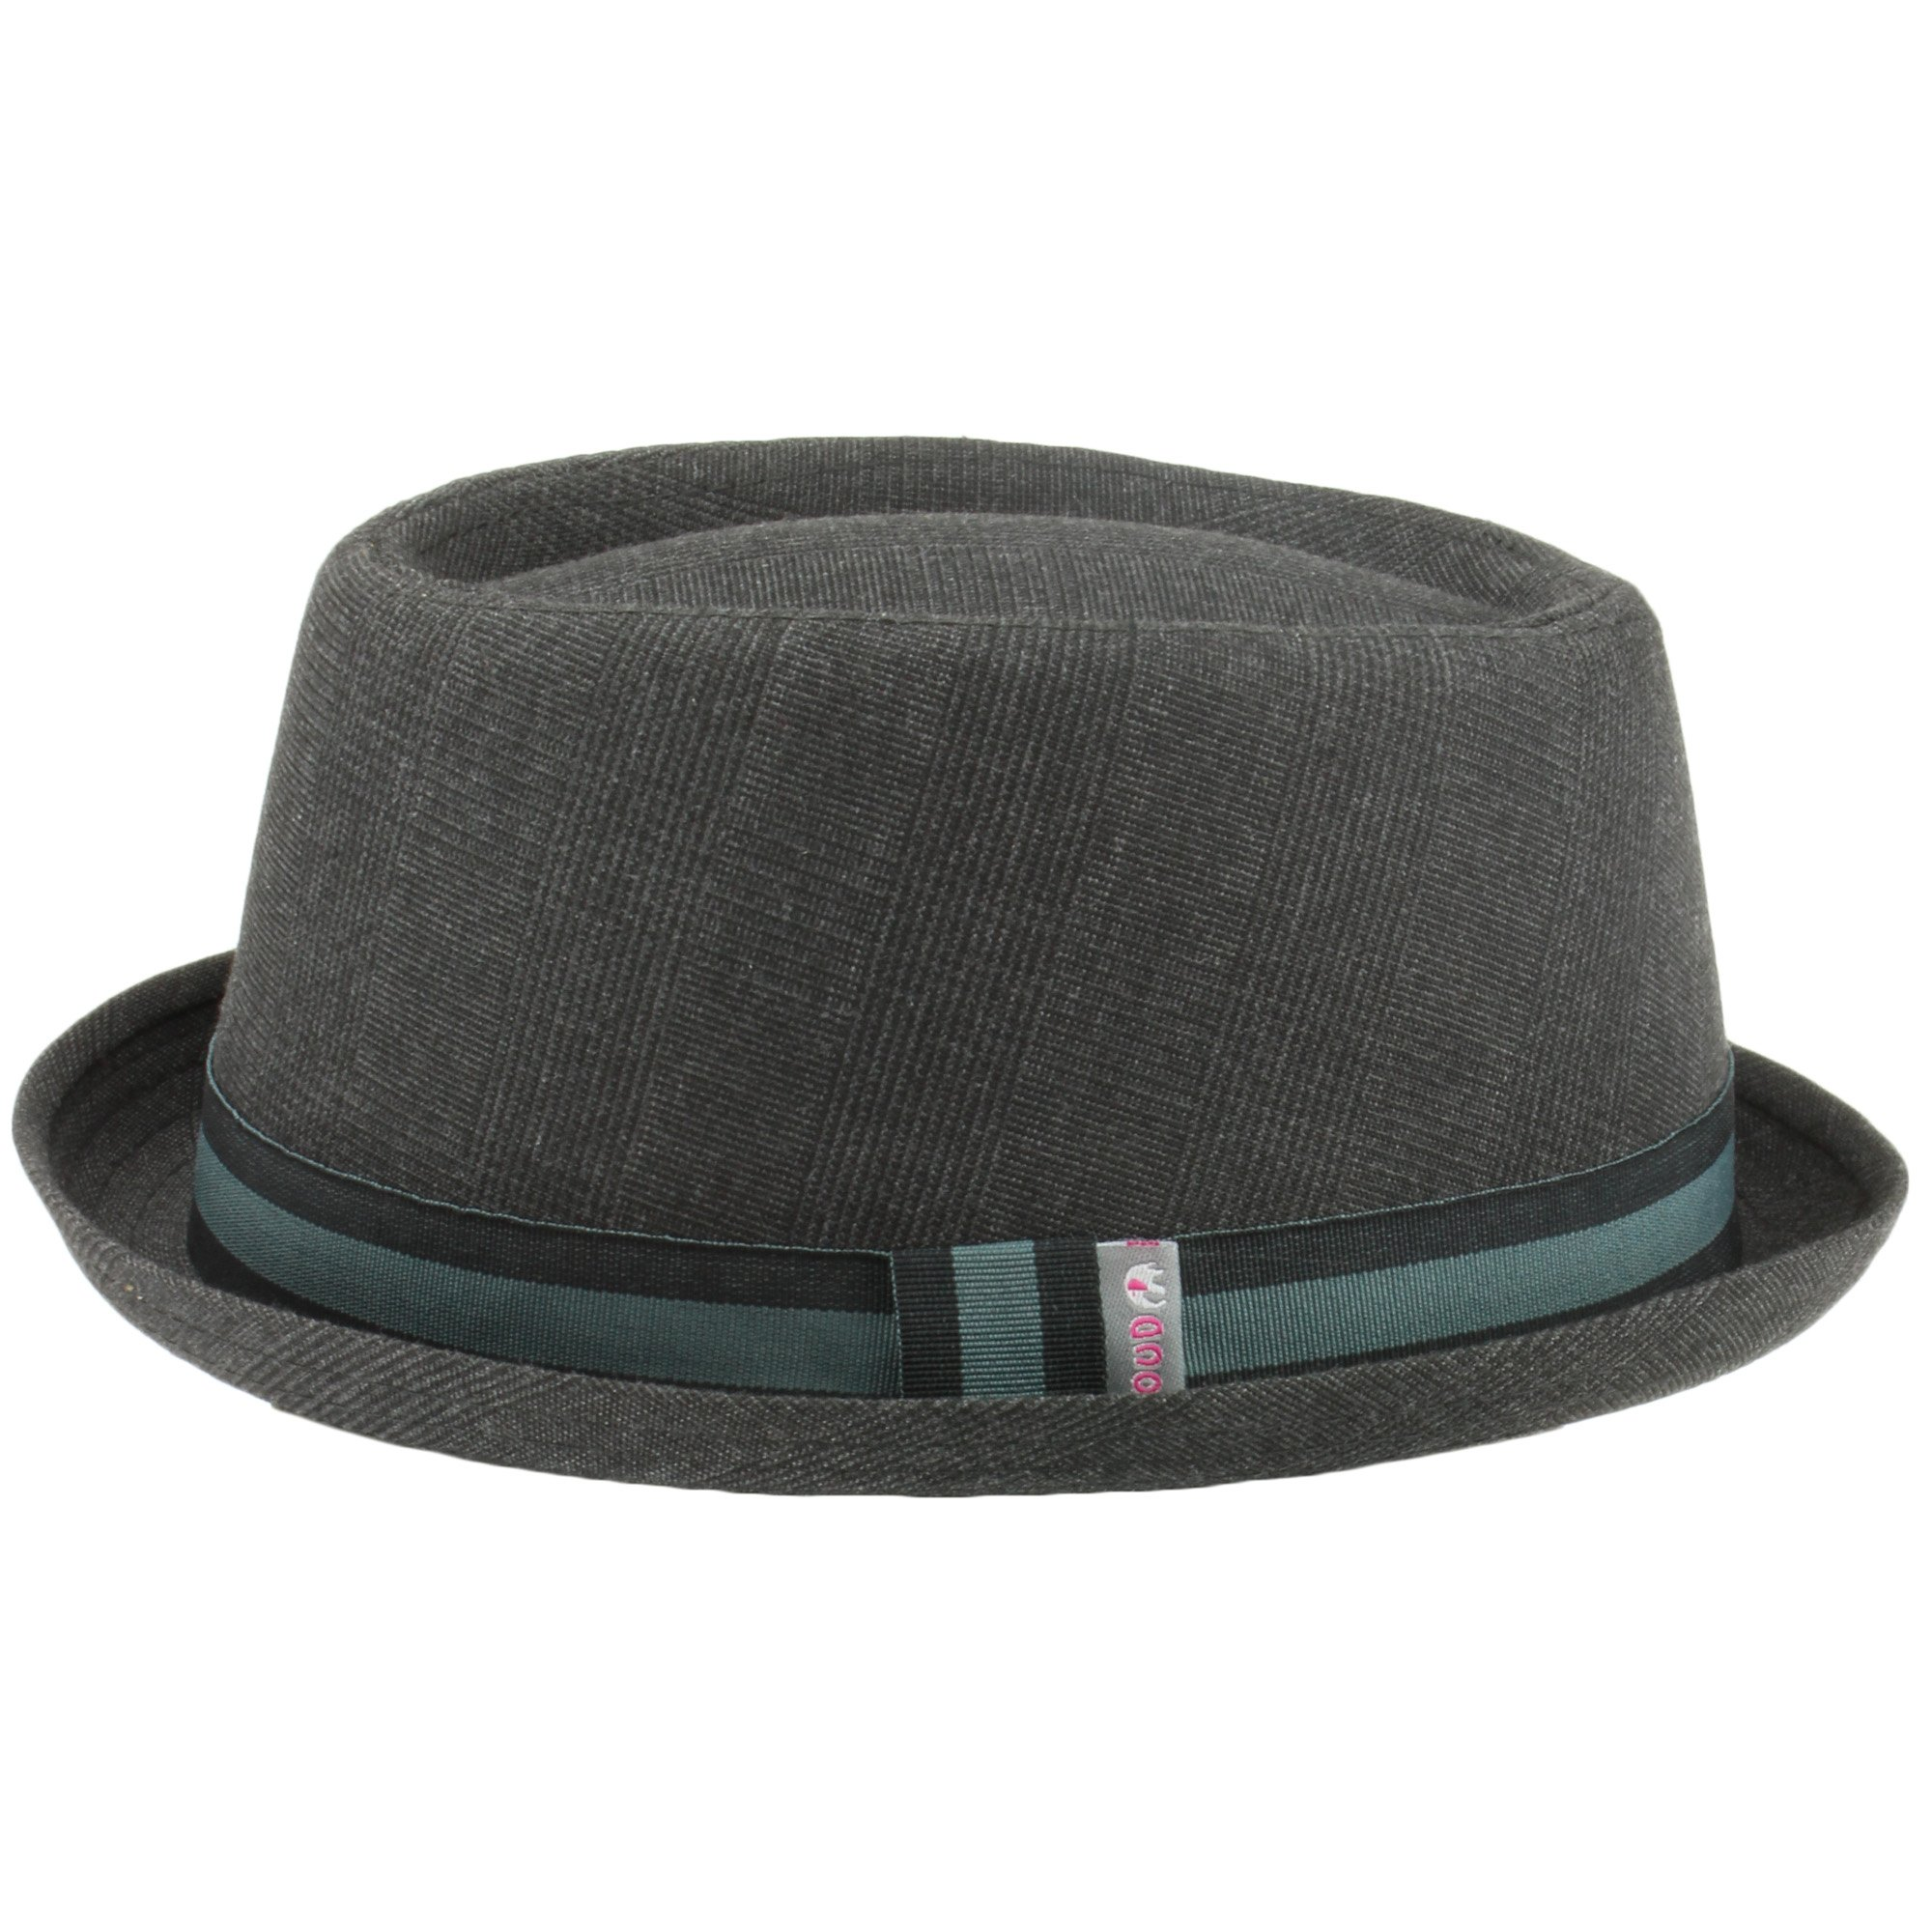 5e35ab16a93 Best Rated in Men s Porkpie Hats   Helpful Customer Reviews - Amazon ...